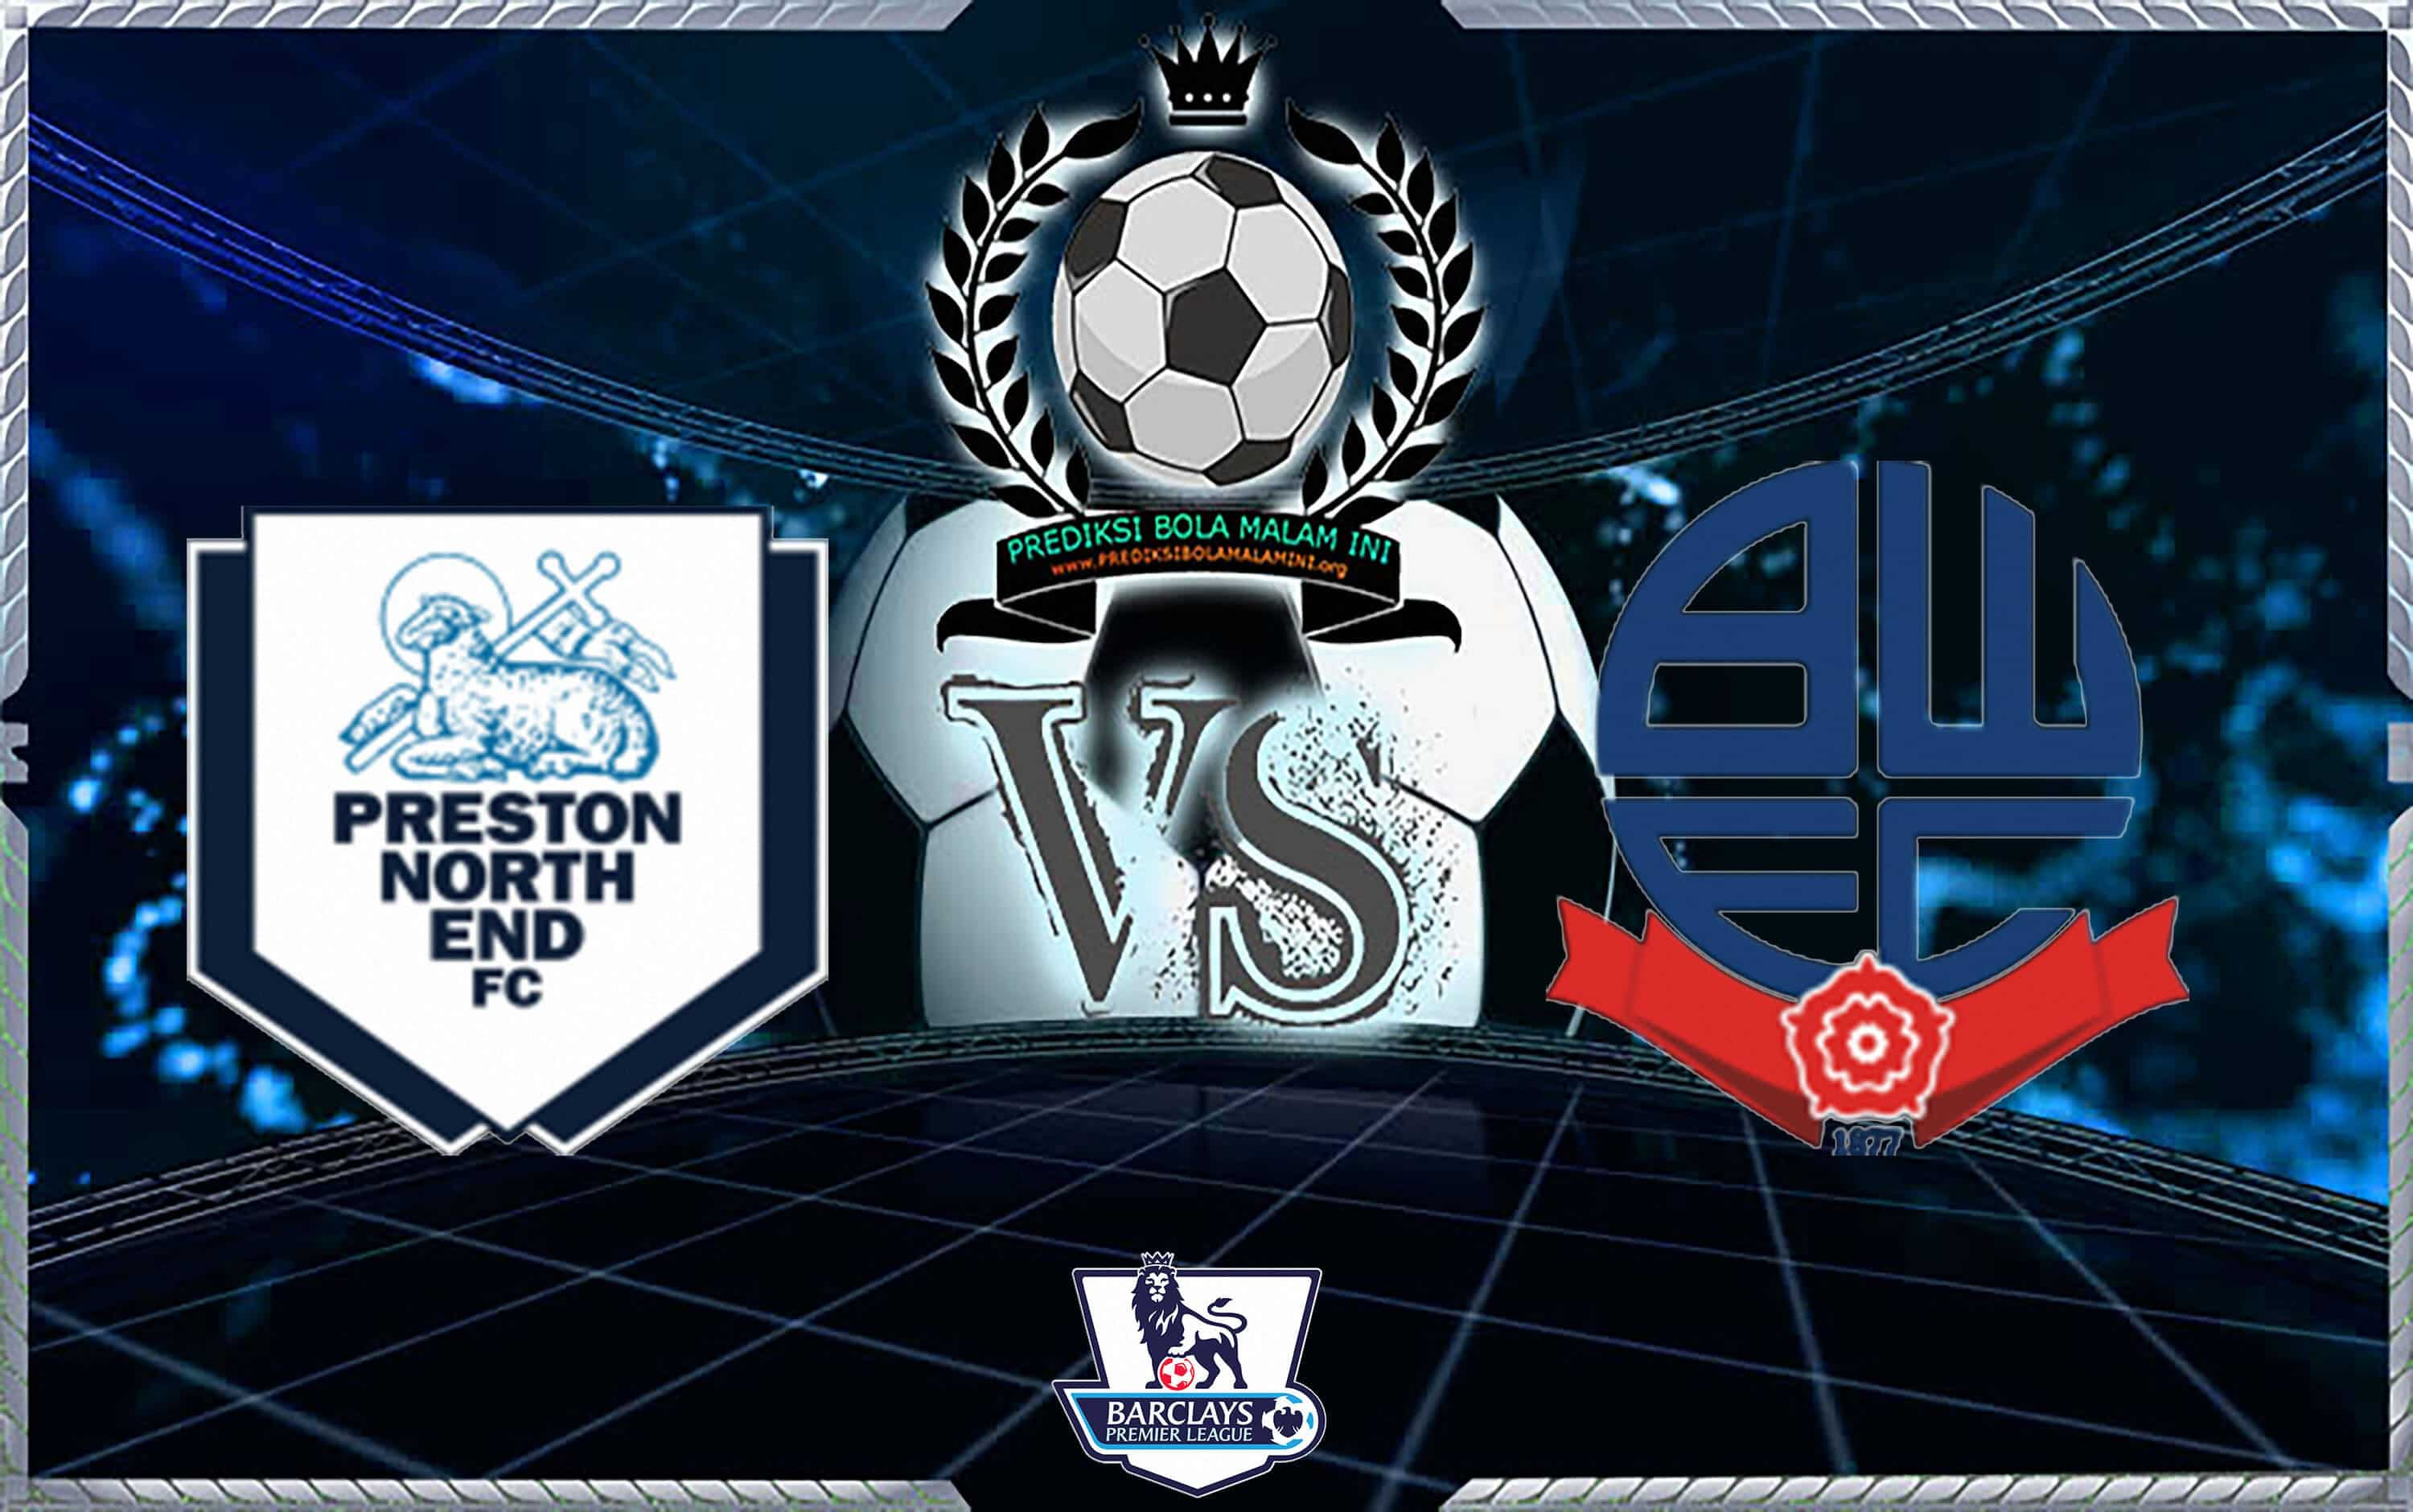 Predicks Skor PRESTON UTARA AKHIR VS BOLTON WANDERERS 1 September 2018